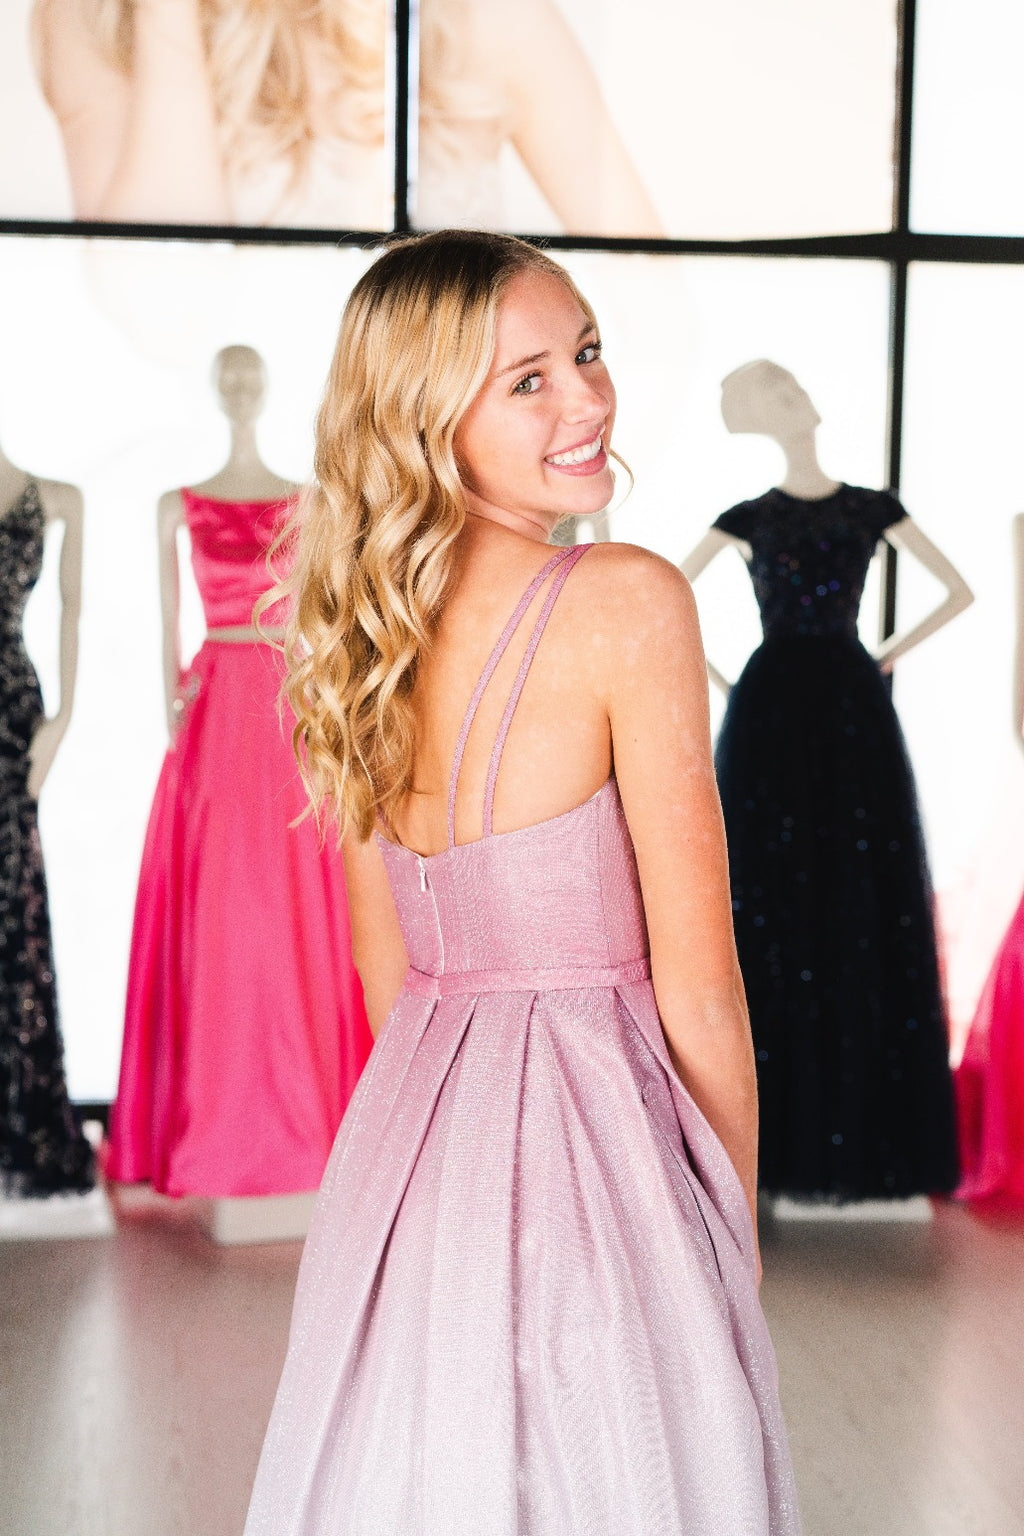 This DJ A9321 A-line shimmer ombre gown in pink features an open back and a sweetheart neckline.